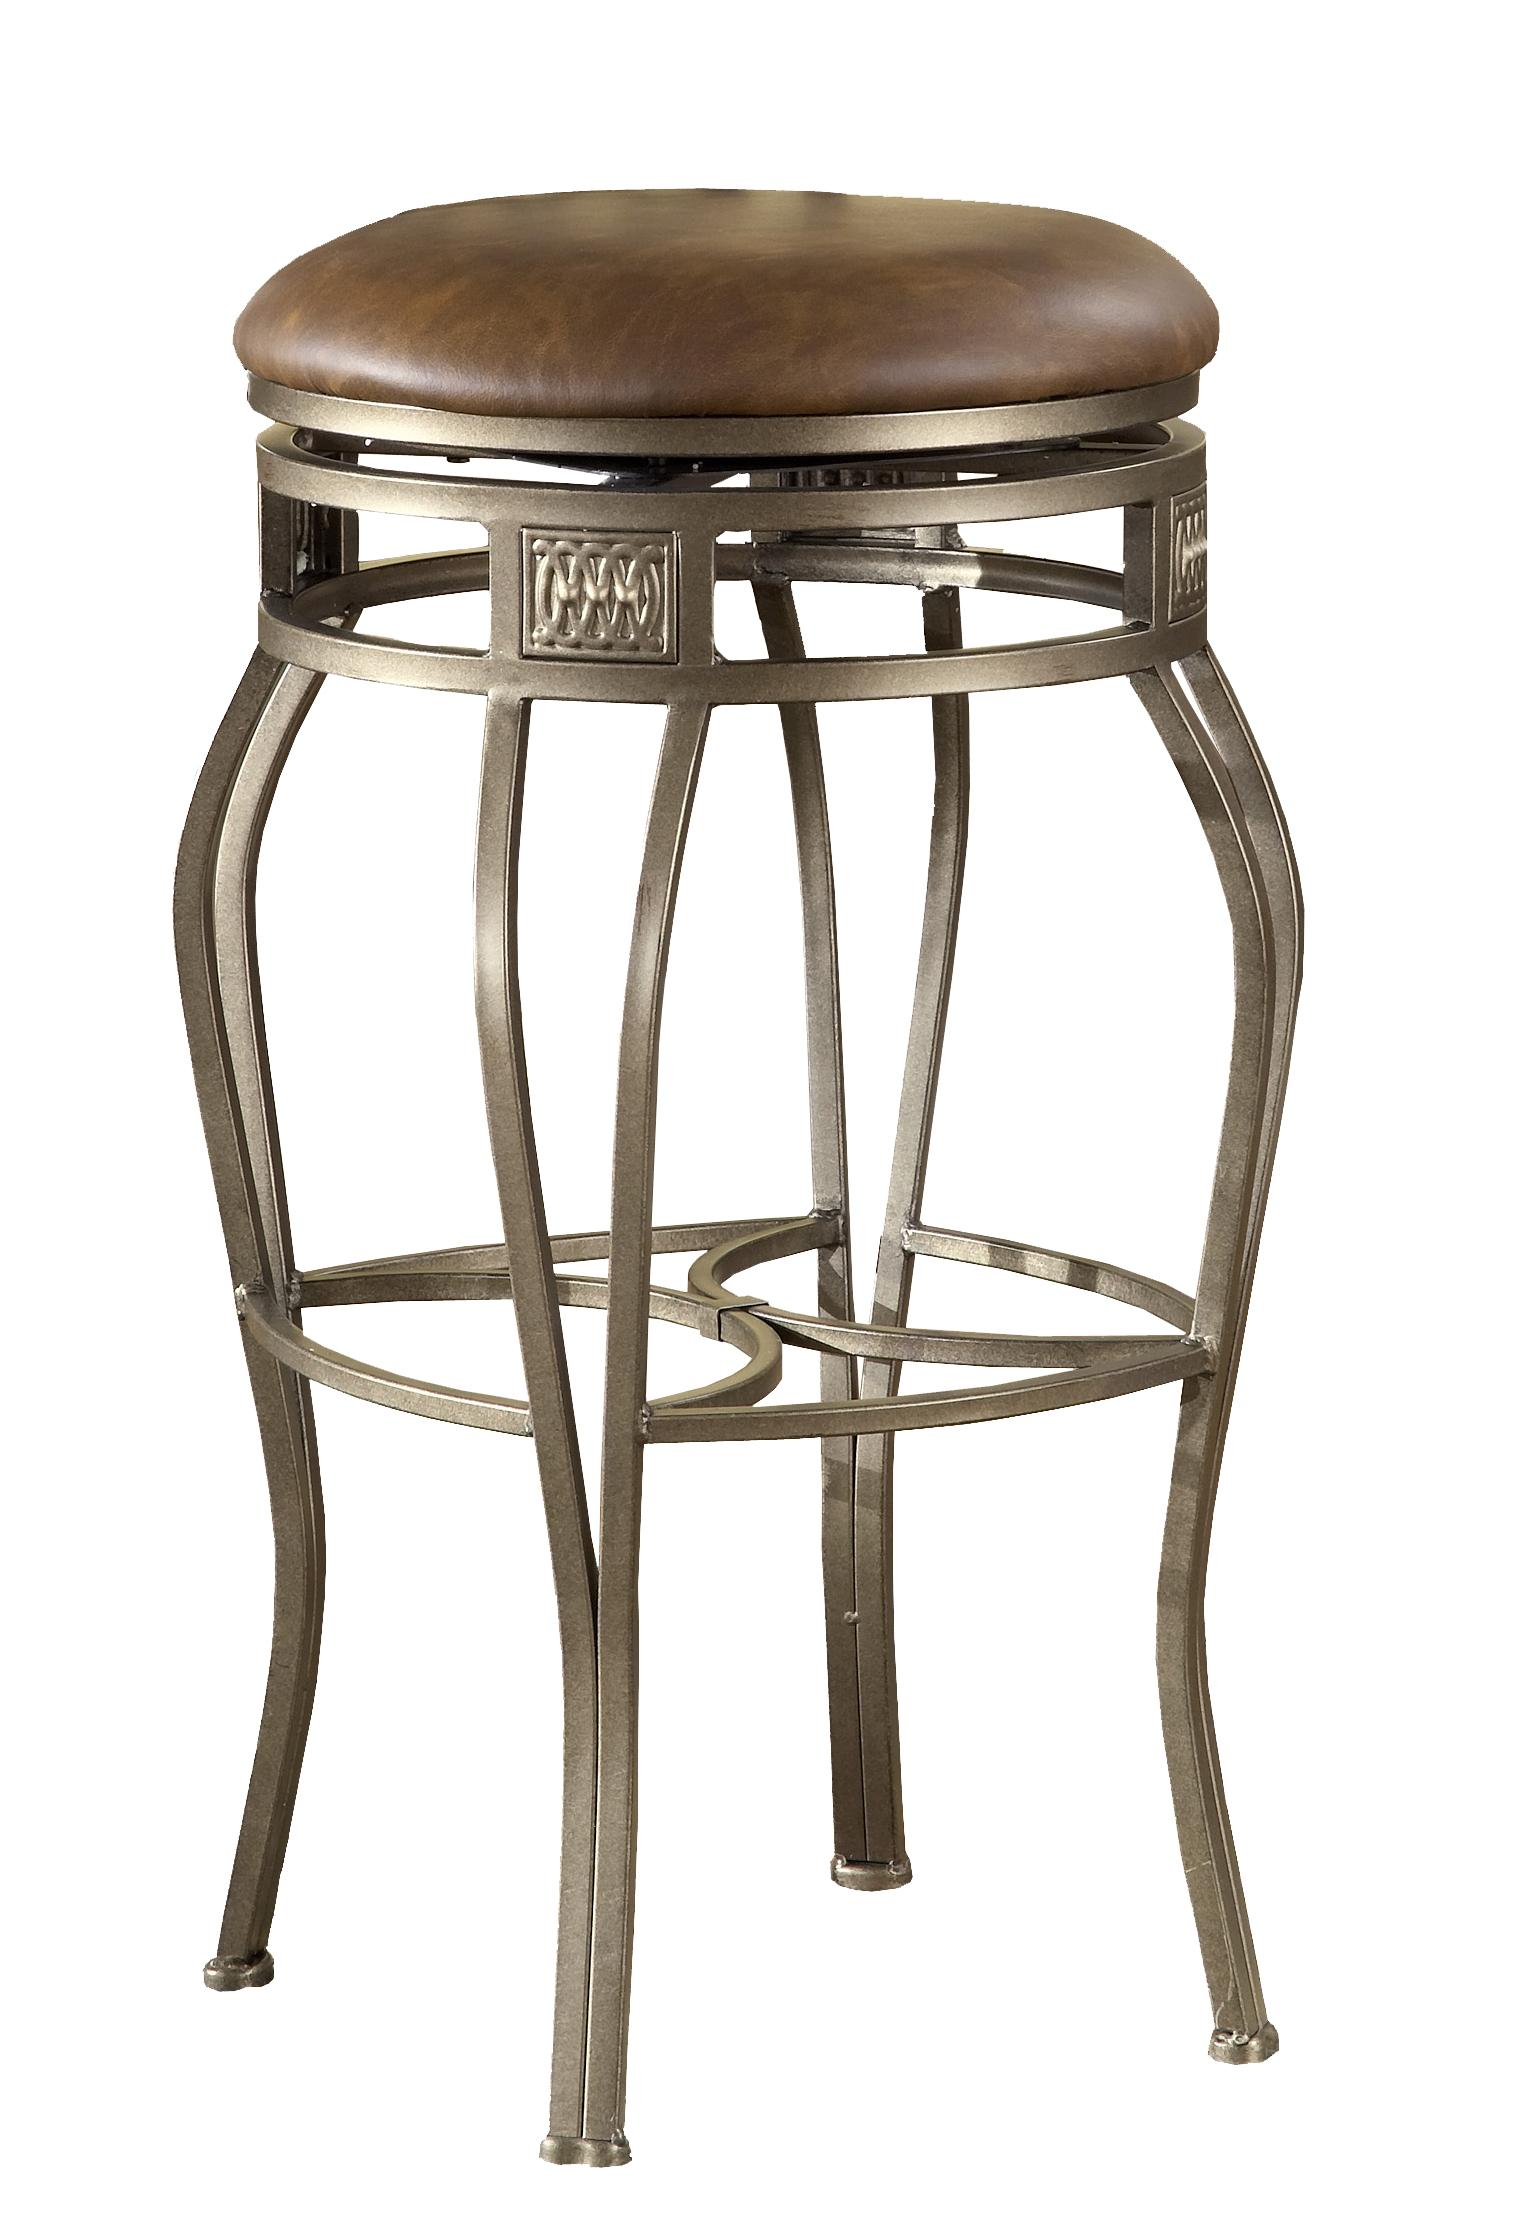 26 Quot Backless Montello Swivel Counter Stool By Hillsdale